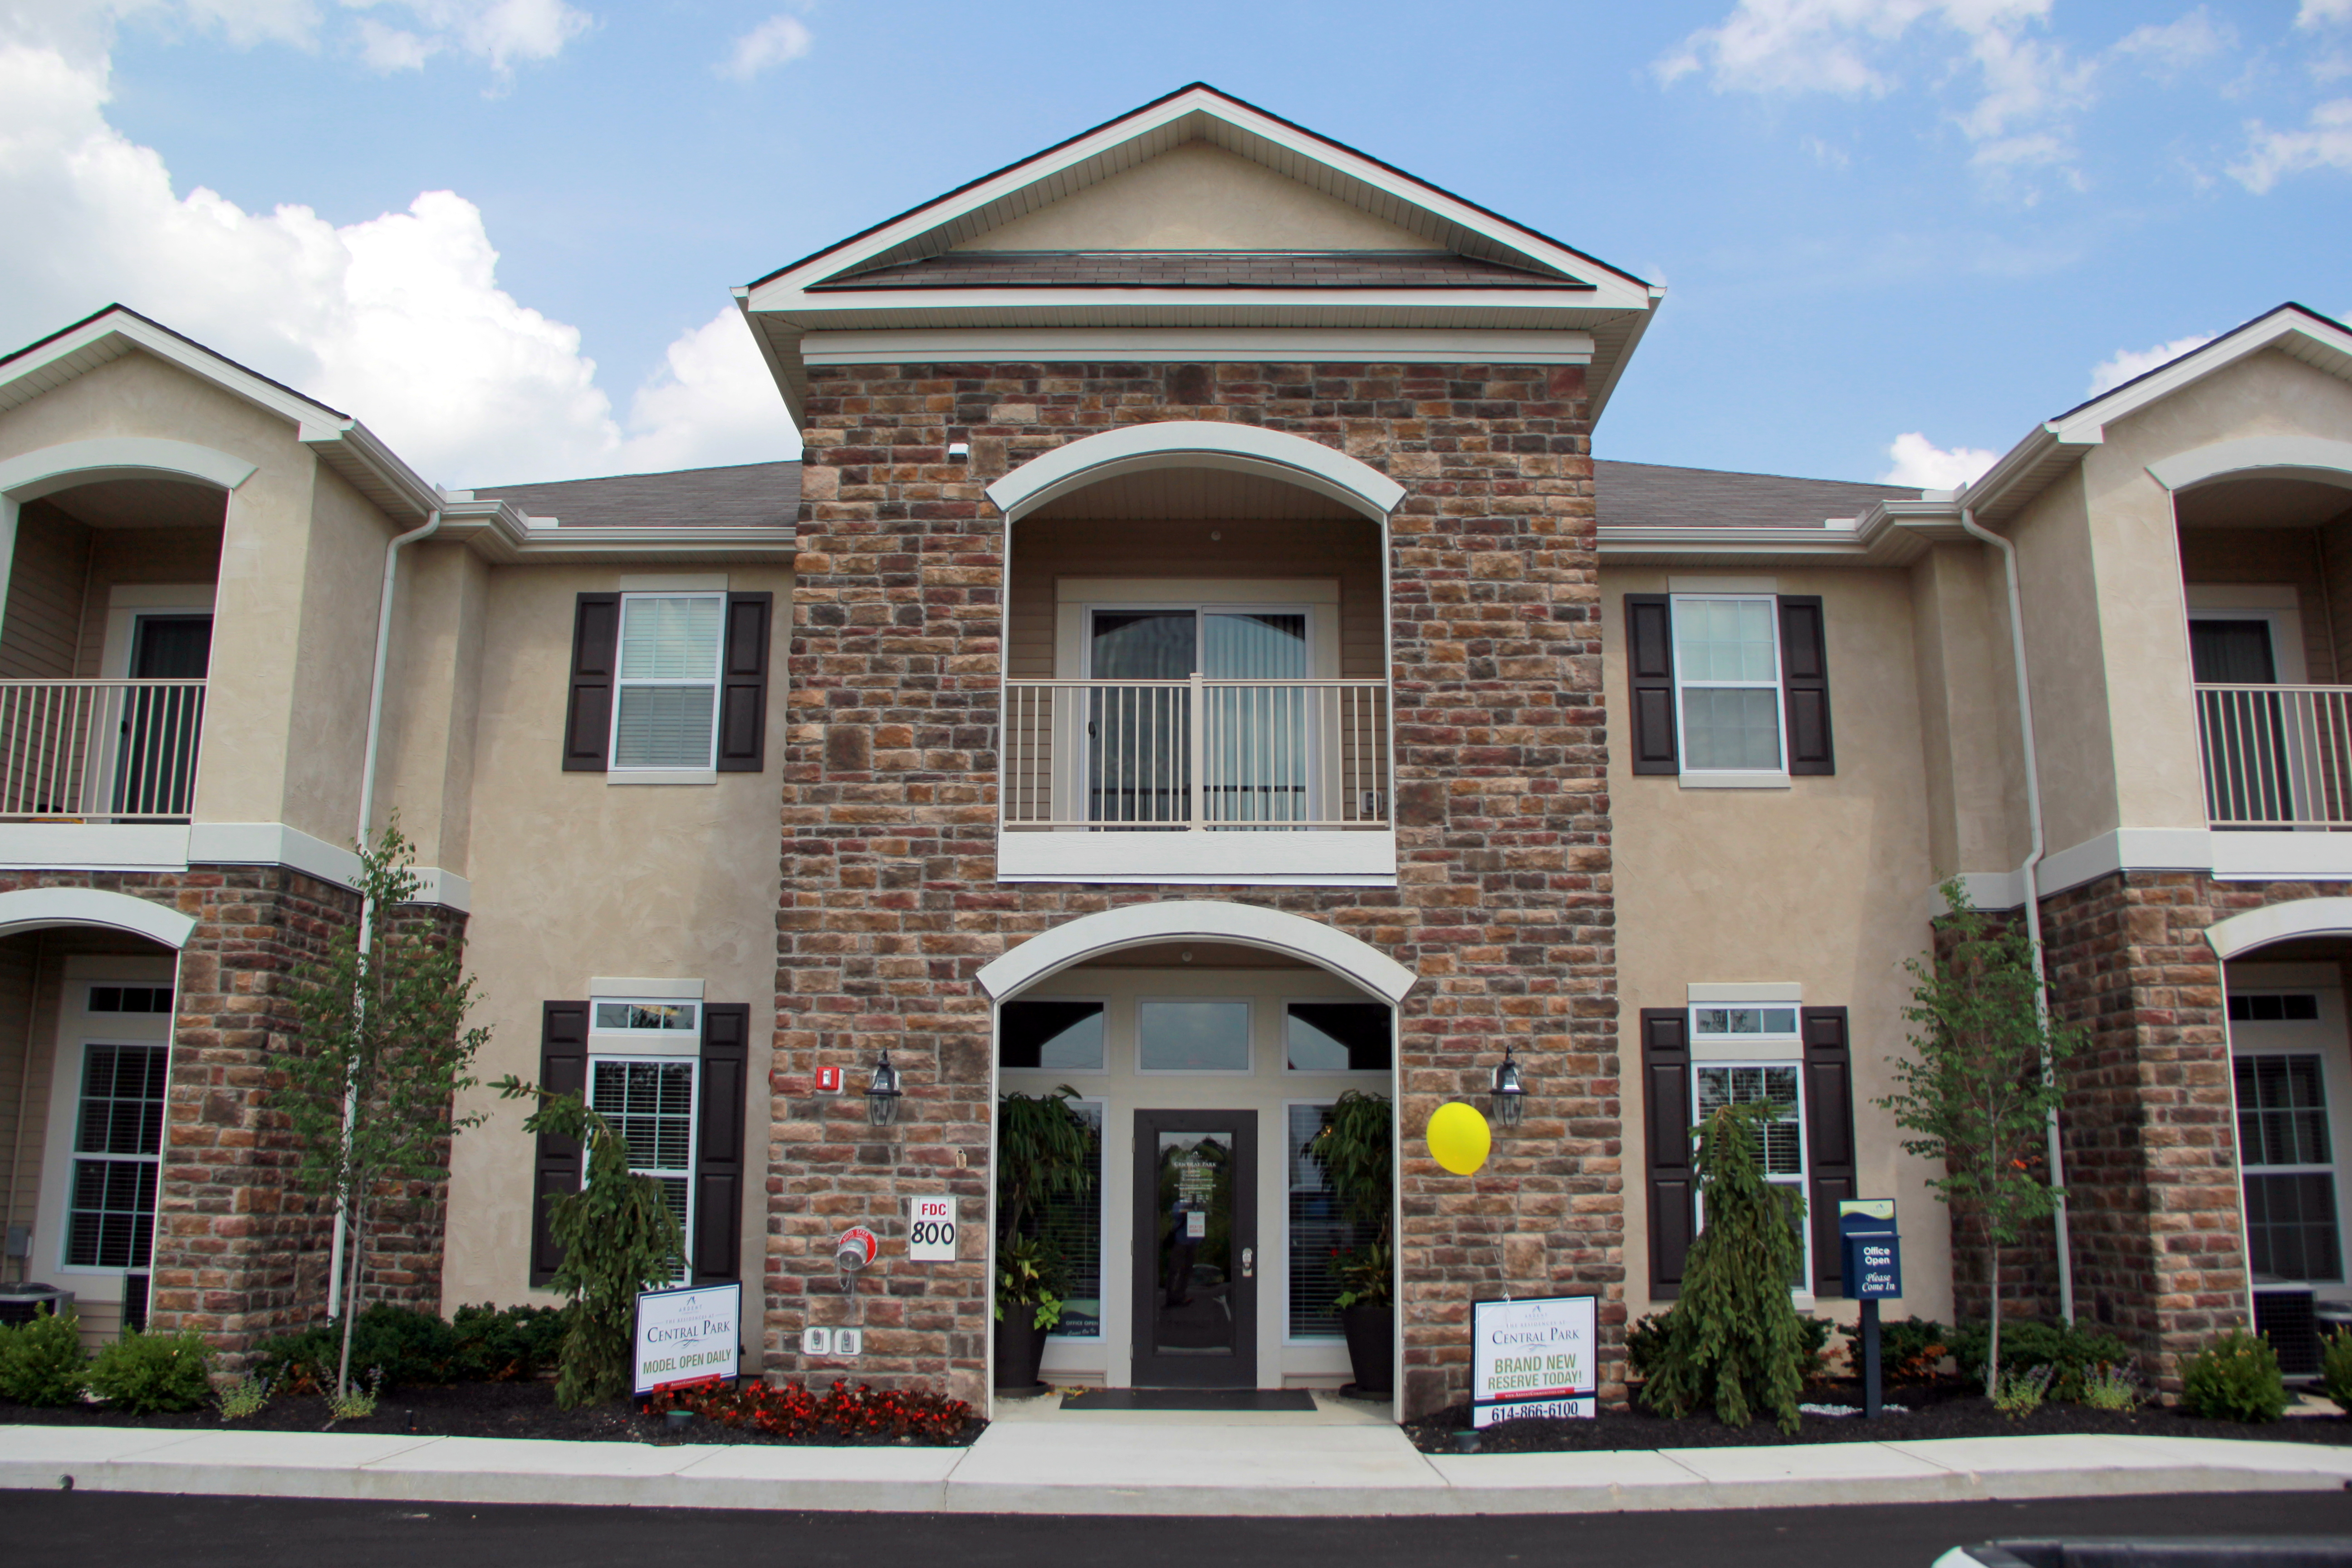 Residences at Central Park - Gahanna, OH - The Schirm Firm